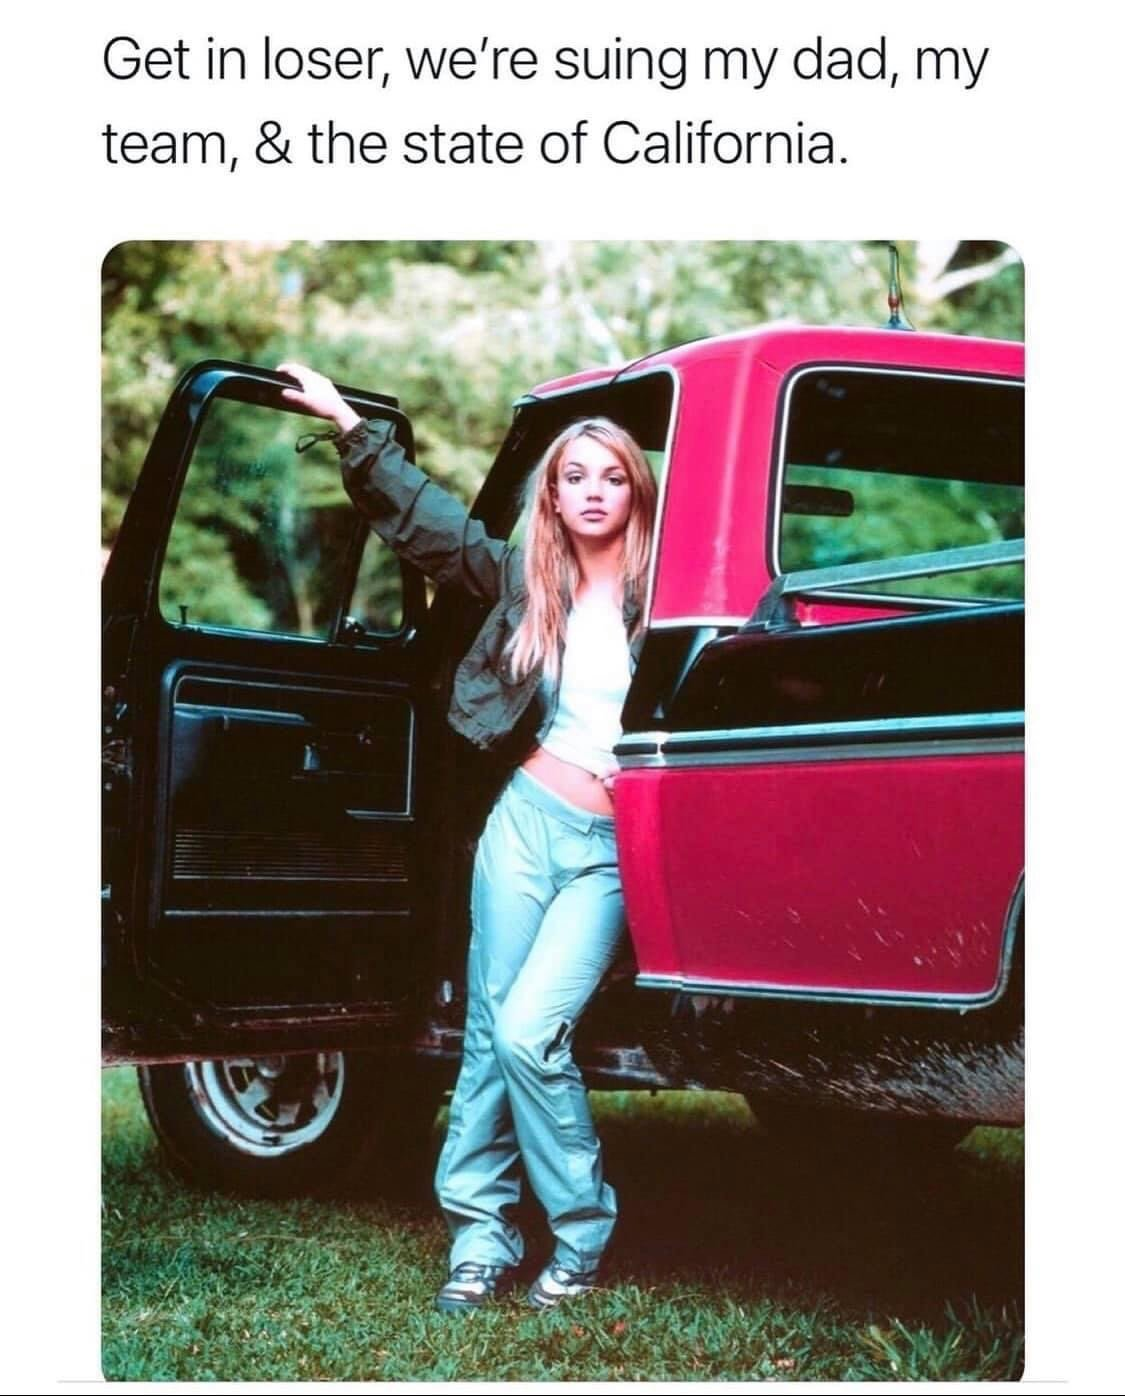 Get in loser, we suing my dad, my team, & the state of California Britney Spears meme